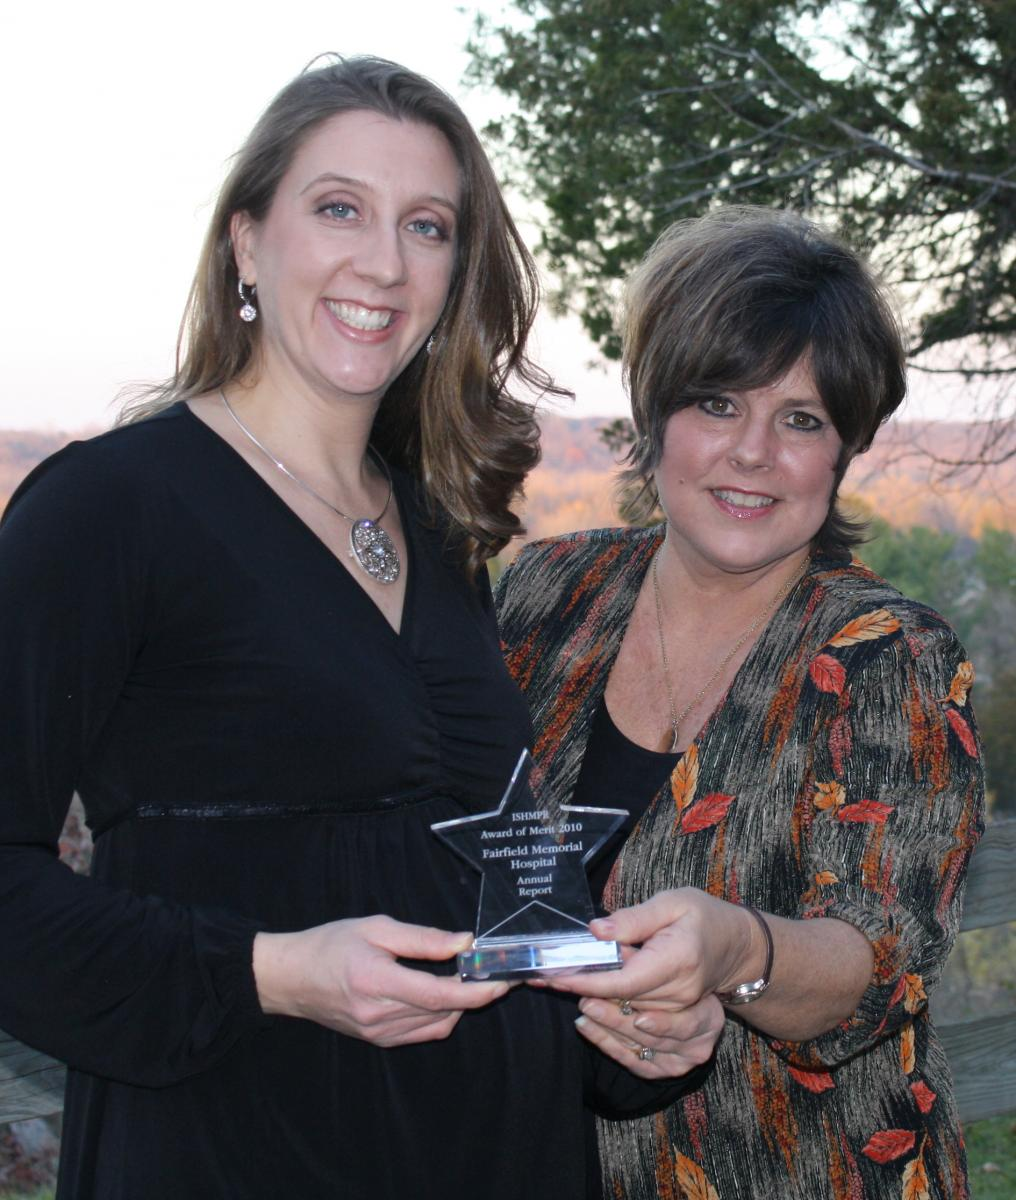 ISHMPR Pinnacle Award Michelle and Charlotte